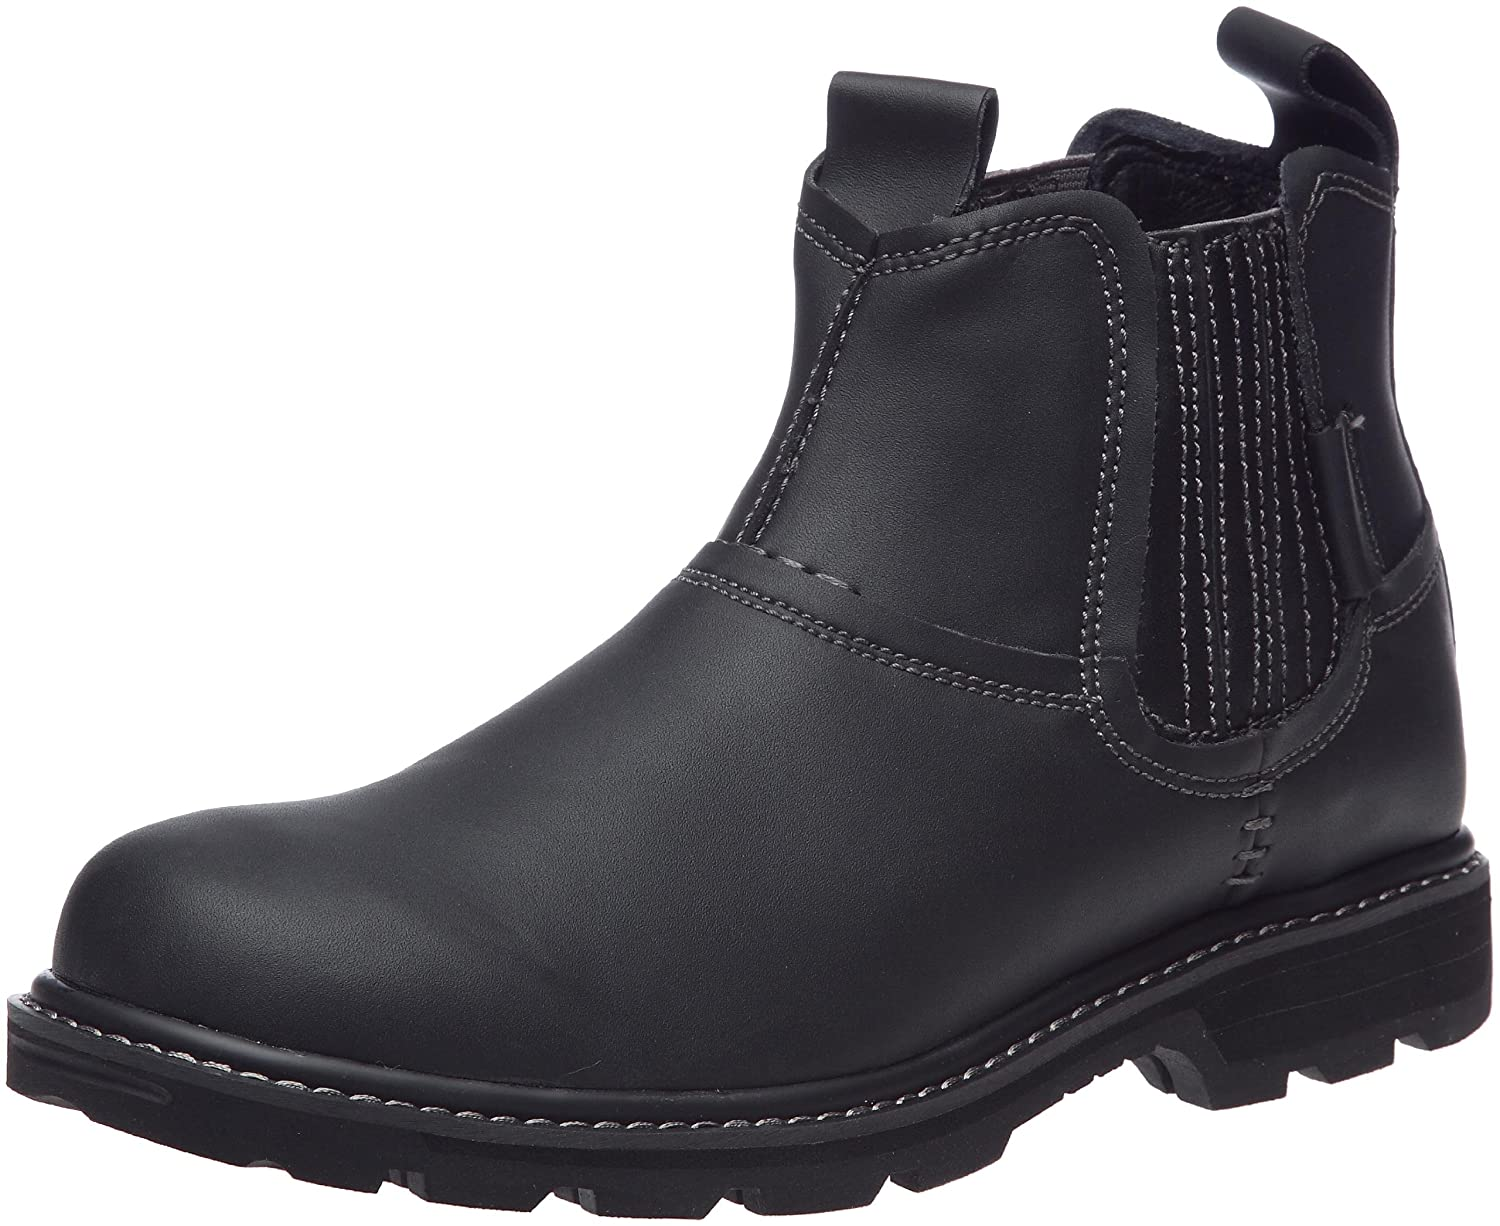 Skechers USA Men's Blaine Orsen Ankle Boot, Dark 62929